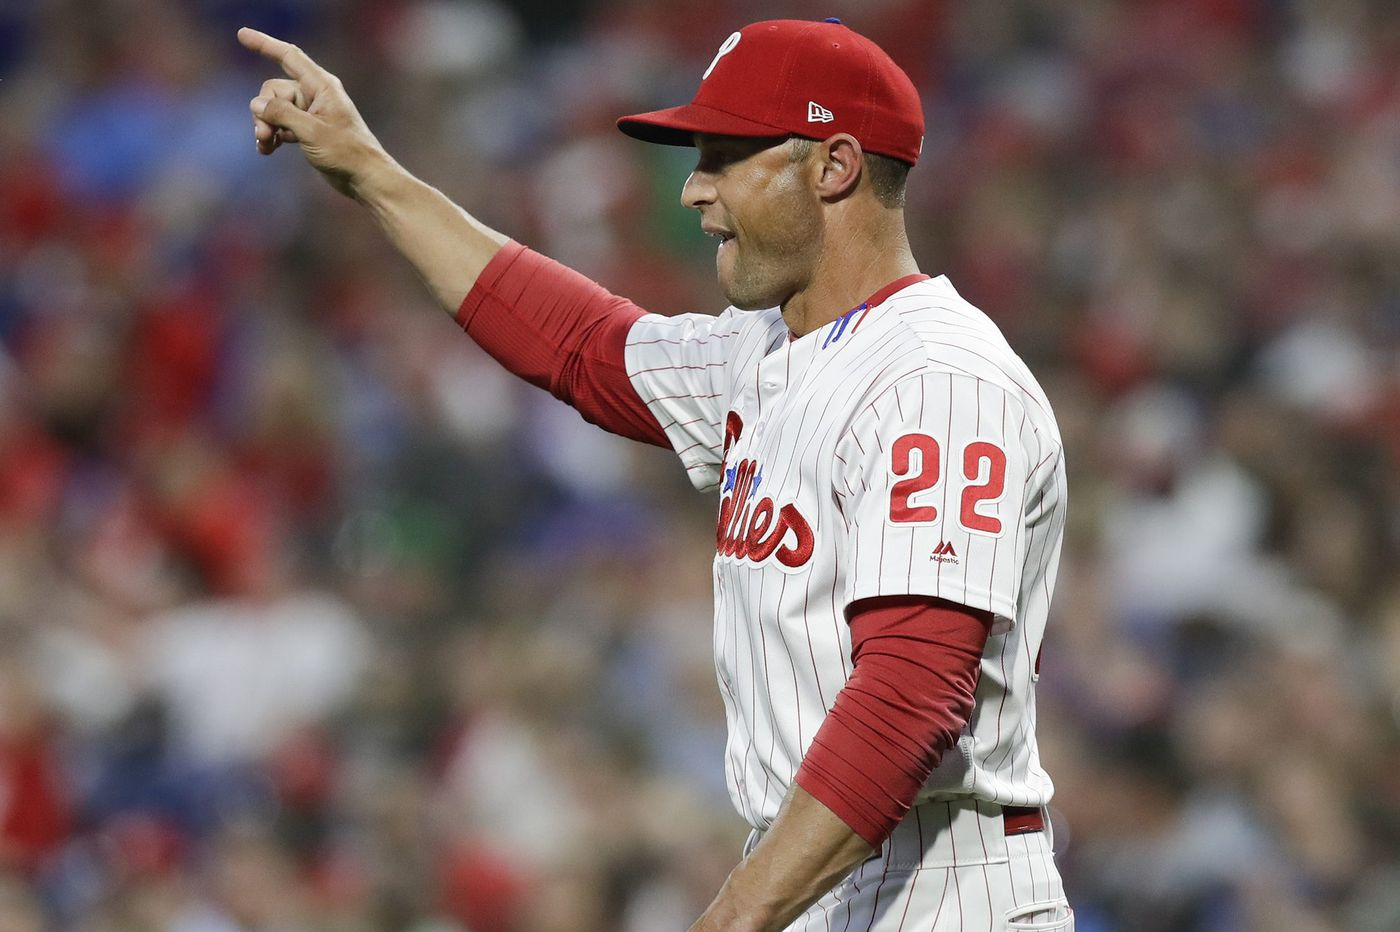 Phillies' stretch run will soften after visit from the Boston Red Sox | Bob Brookover